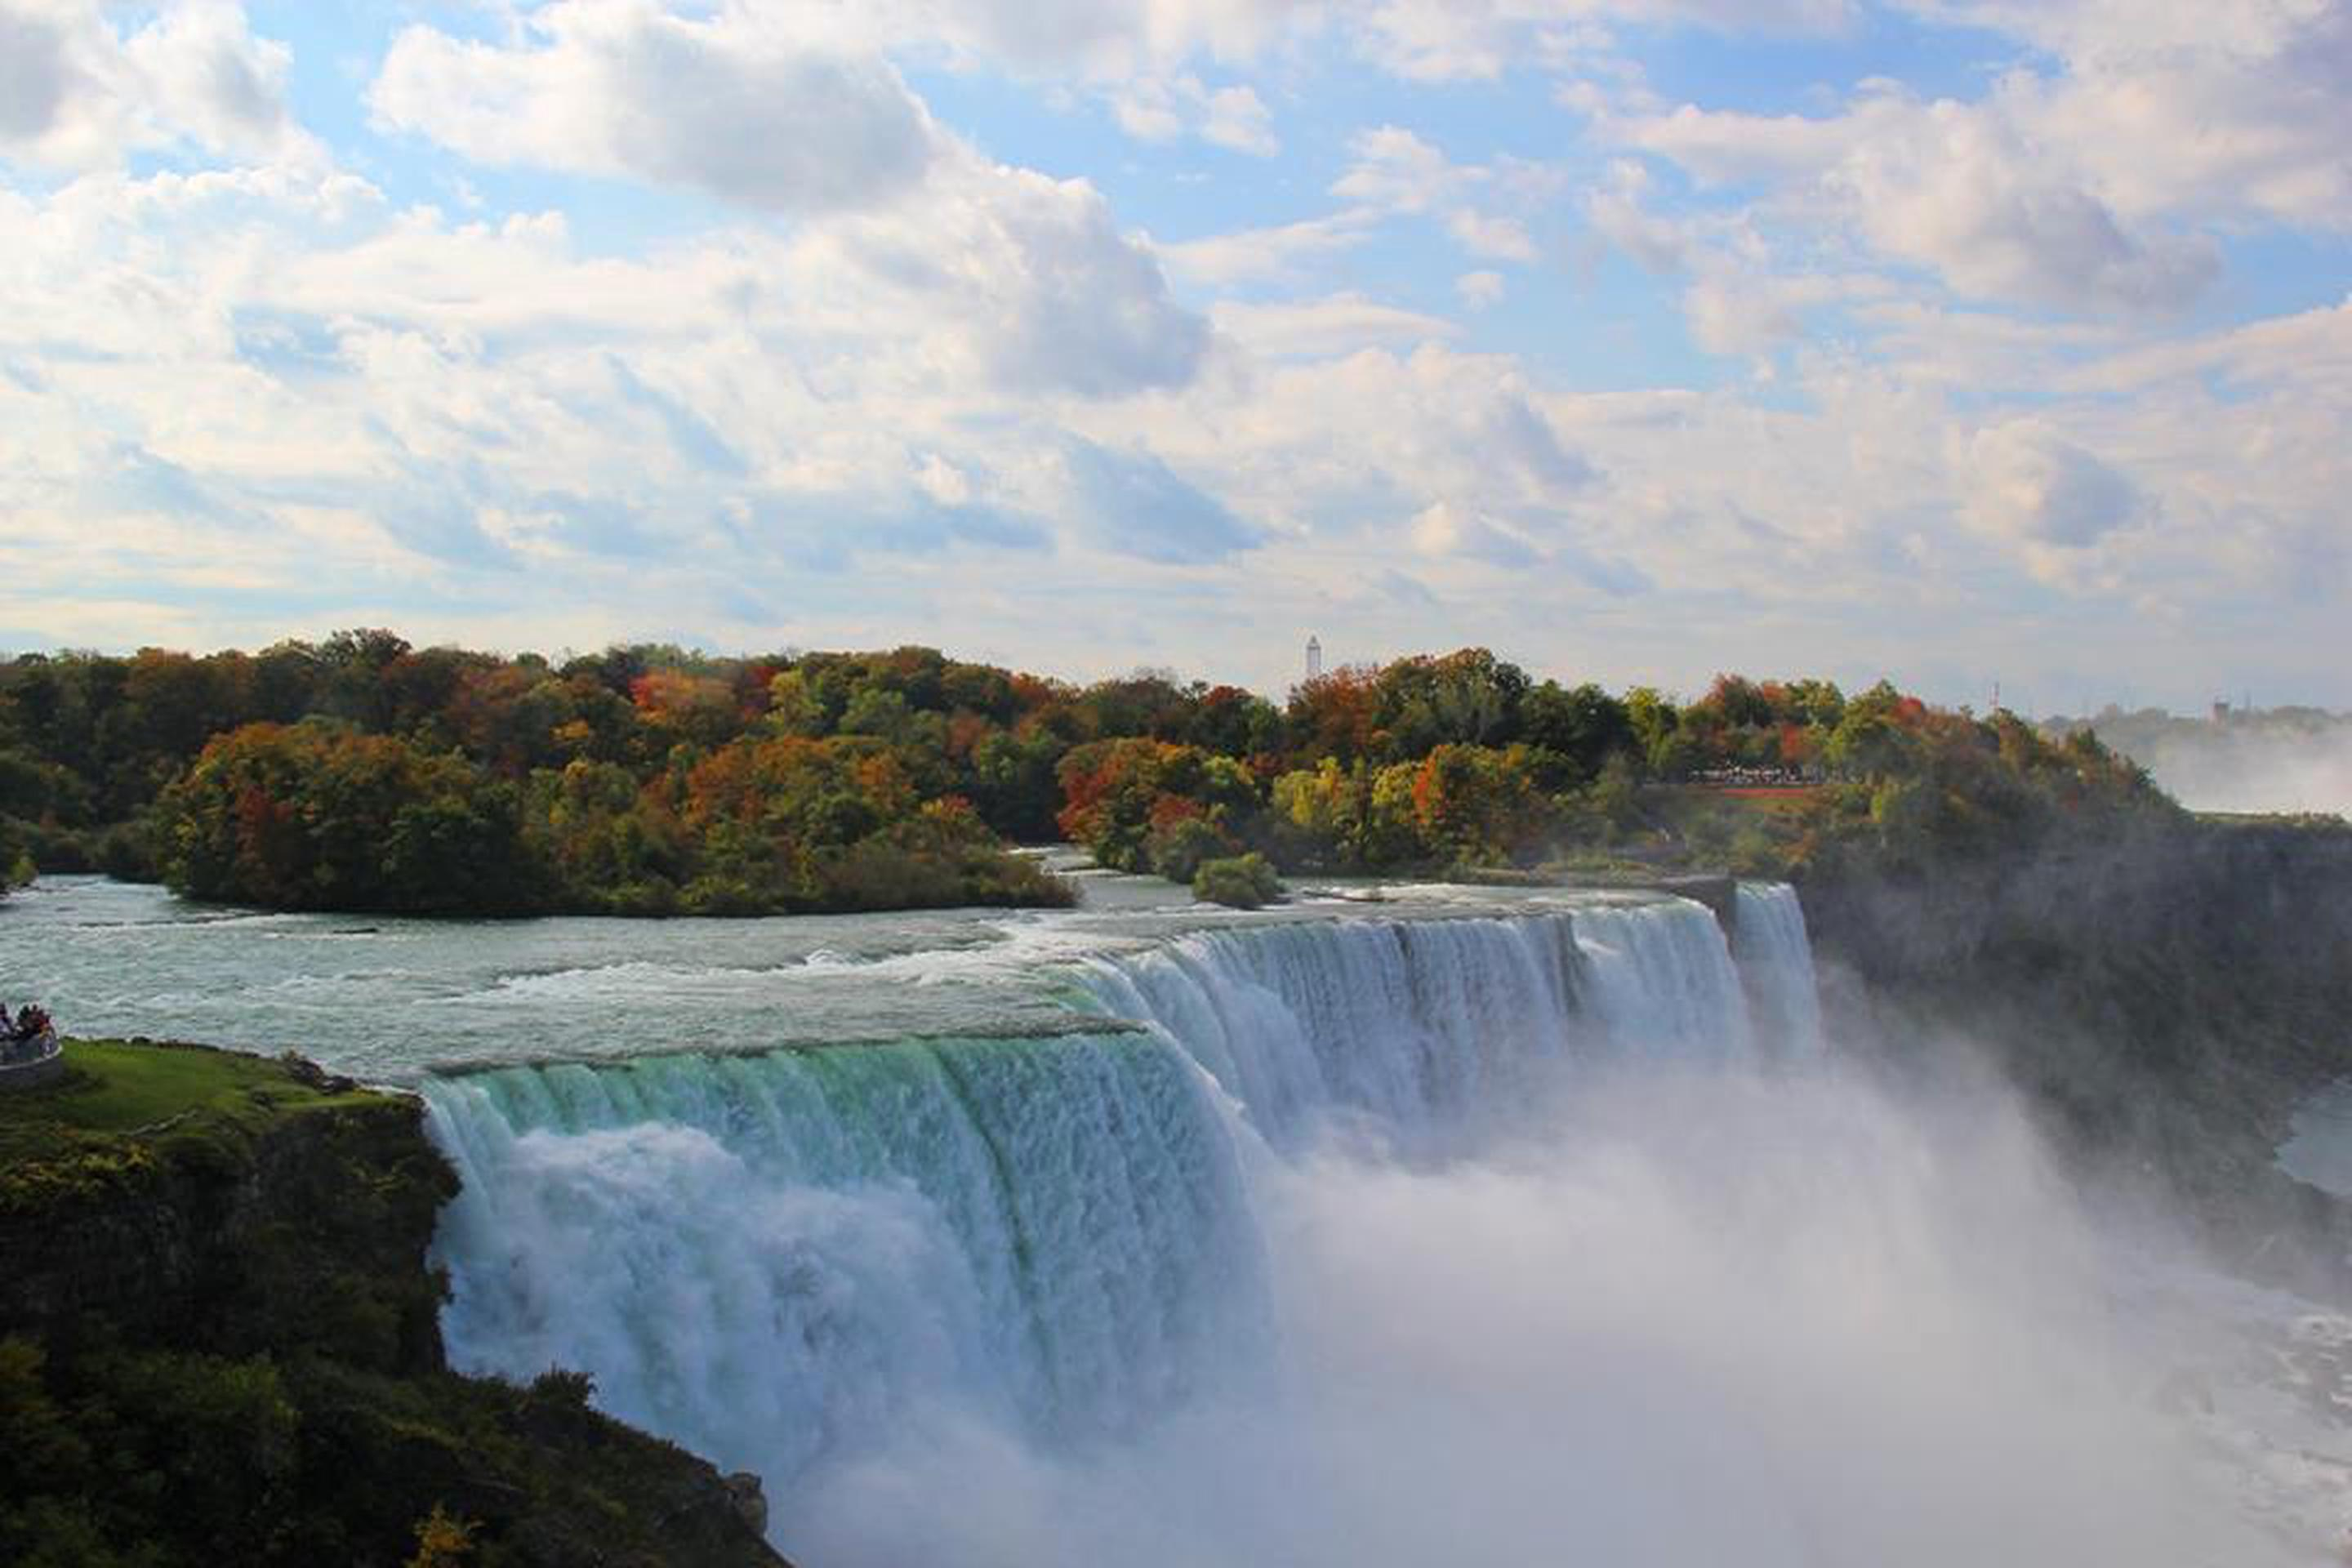 Niagara Falls State ParkMillions of people visit Niagara Falls State Park to see the famous waterfall